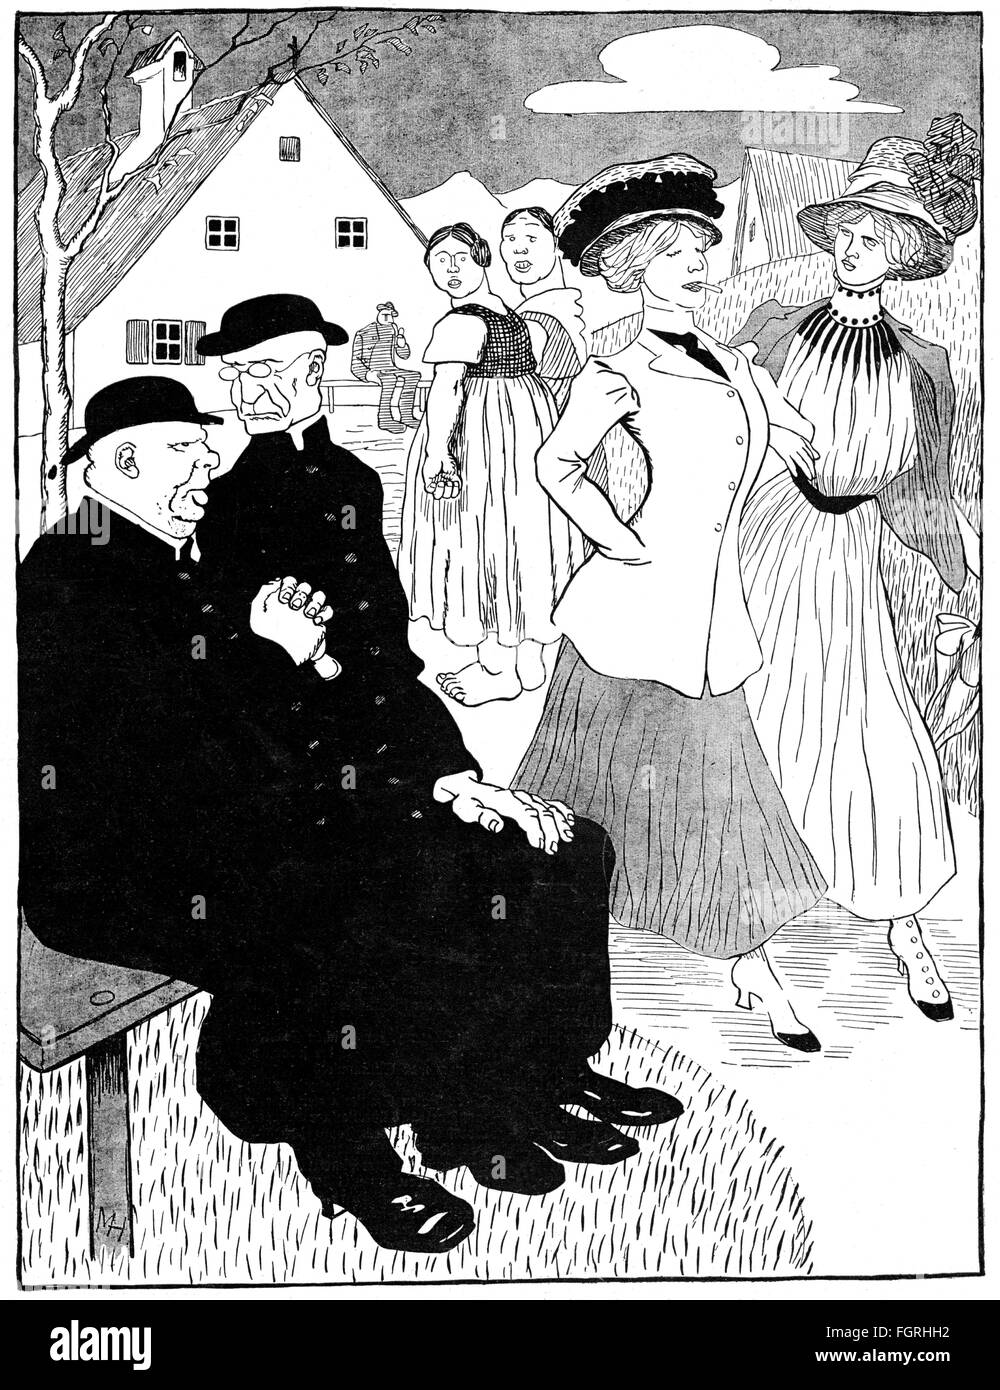 fashion, early 20th century / turn of the century, 'Modernism', drawing by Max Hagen (1859 - 1914), out - Stock Image